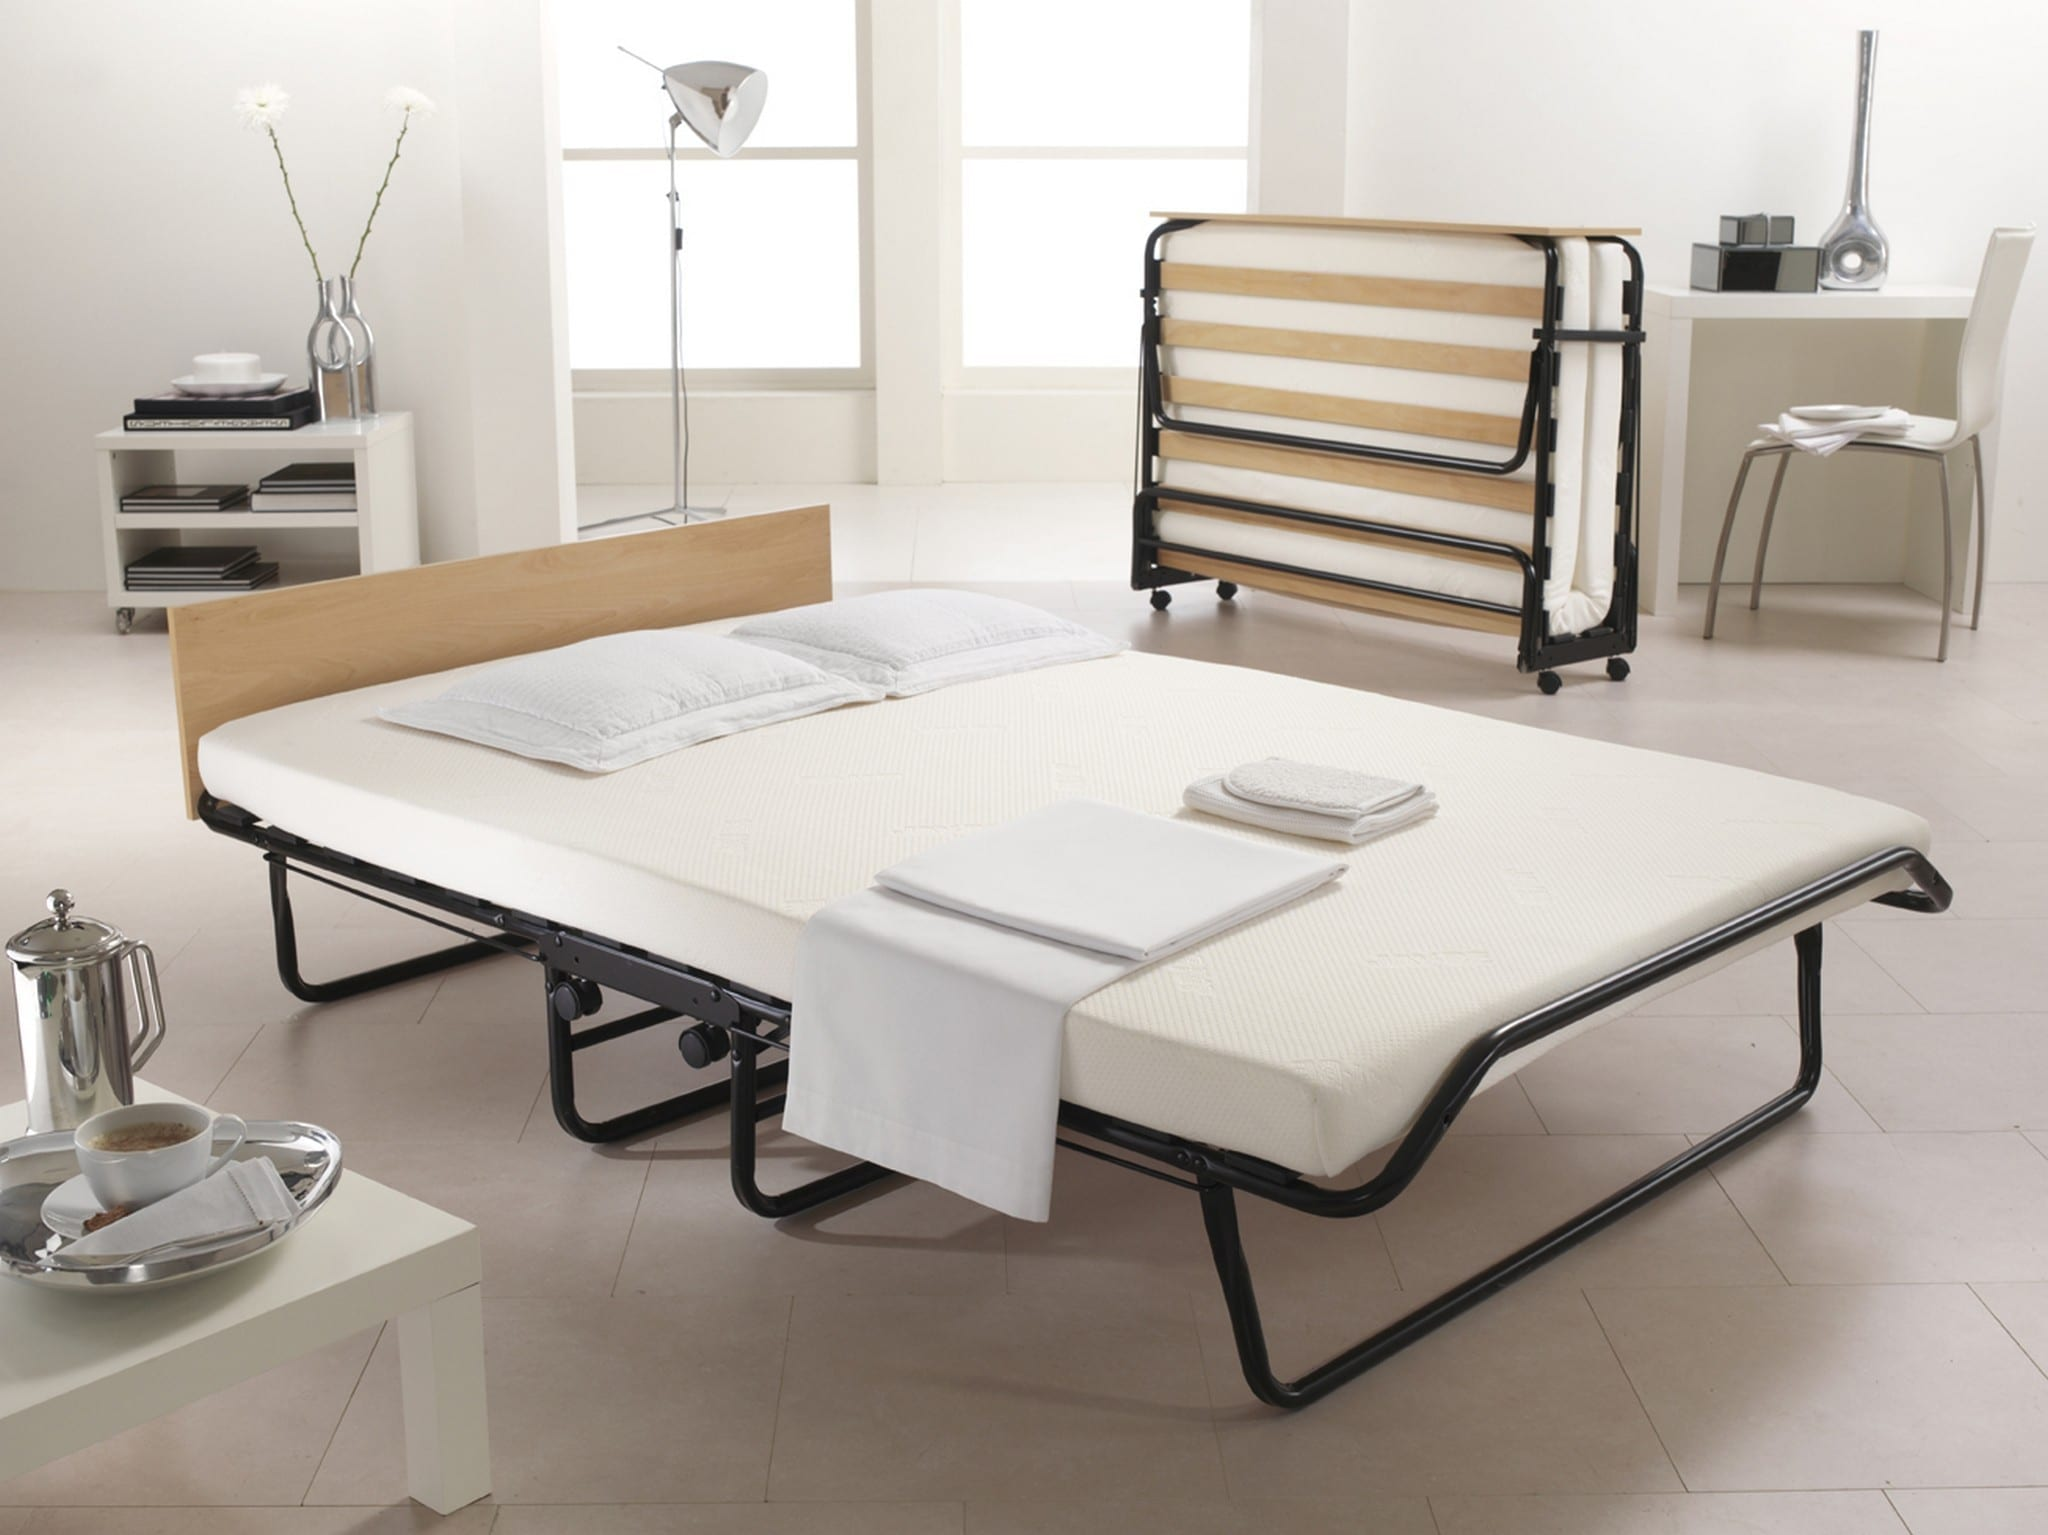 Folding Beds Reviews By www.snoremagazine.com